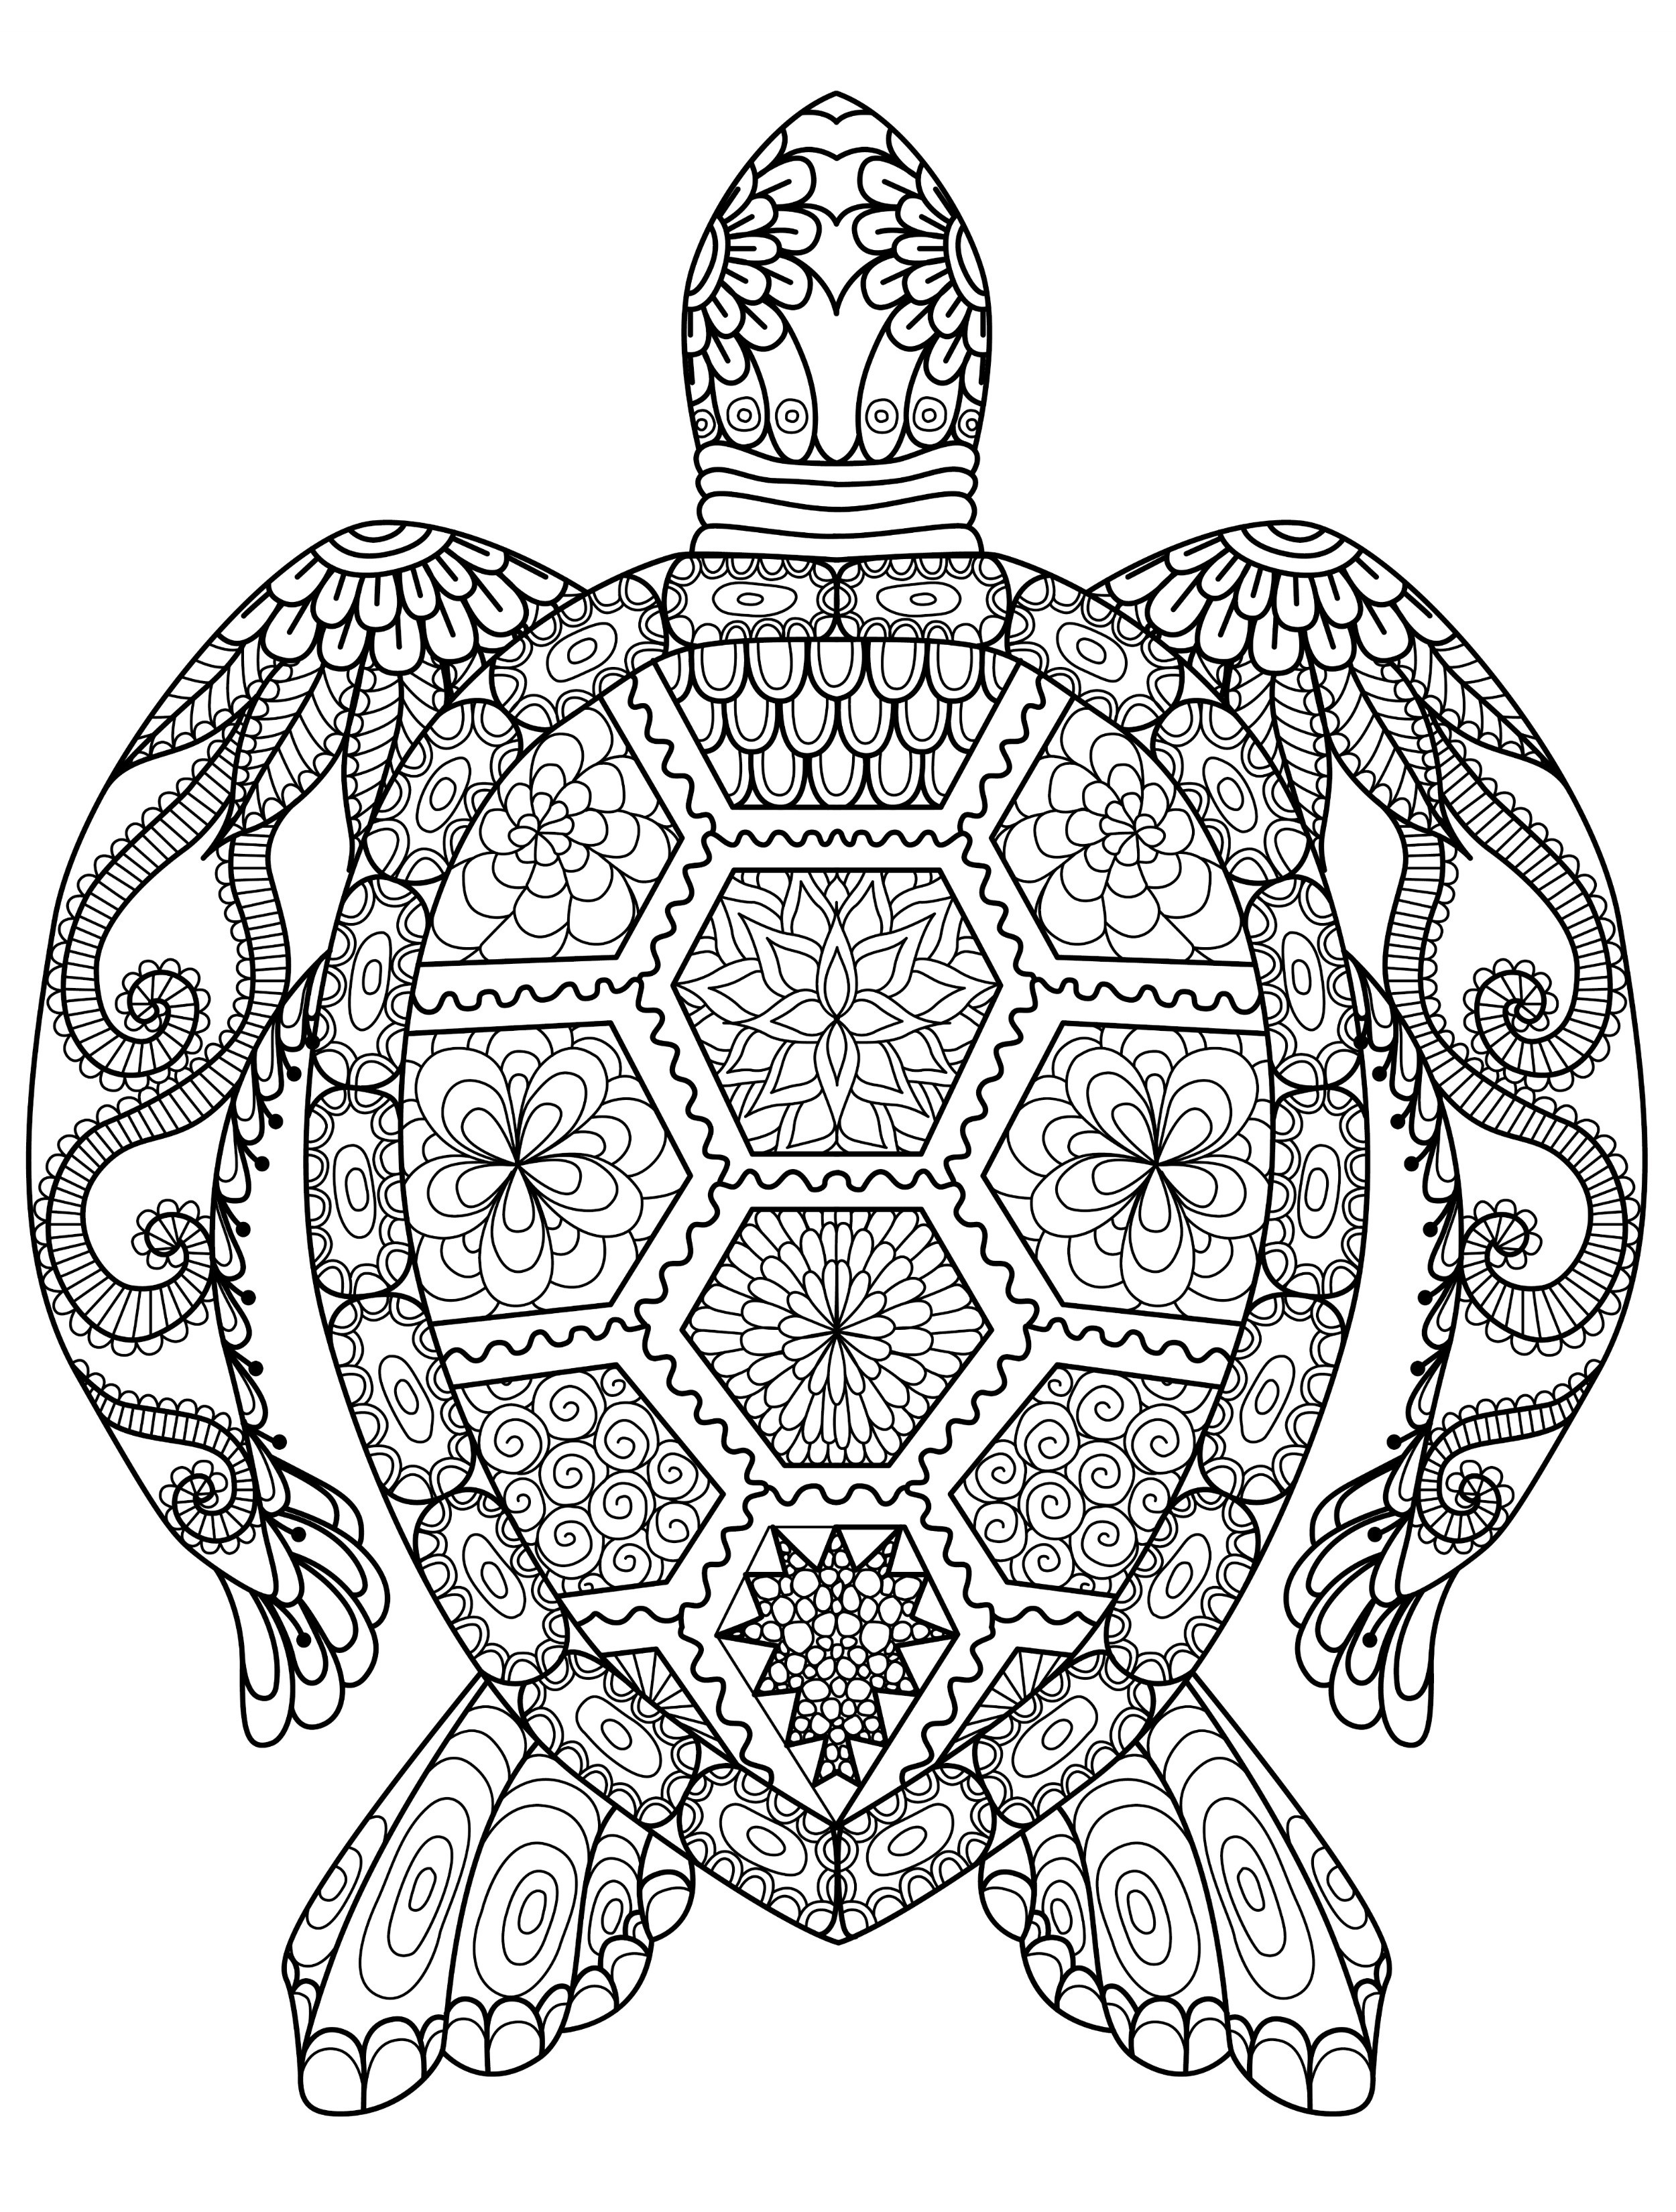 printable pictures to color for adults adult coloring pages animals best coloring pages for kids to adults for printable color pictures